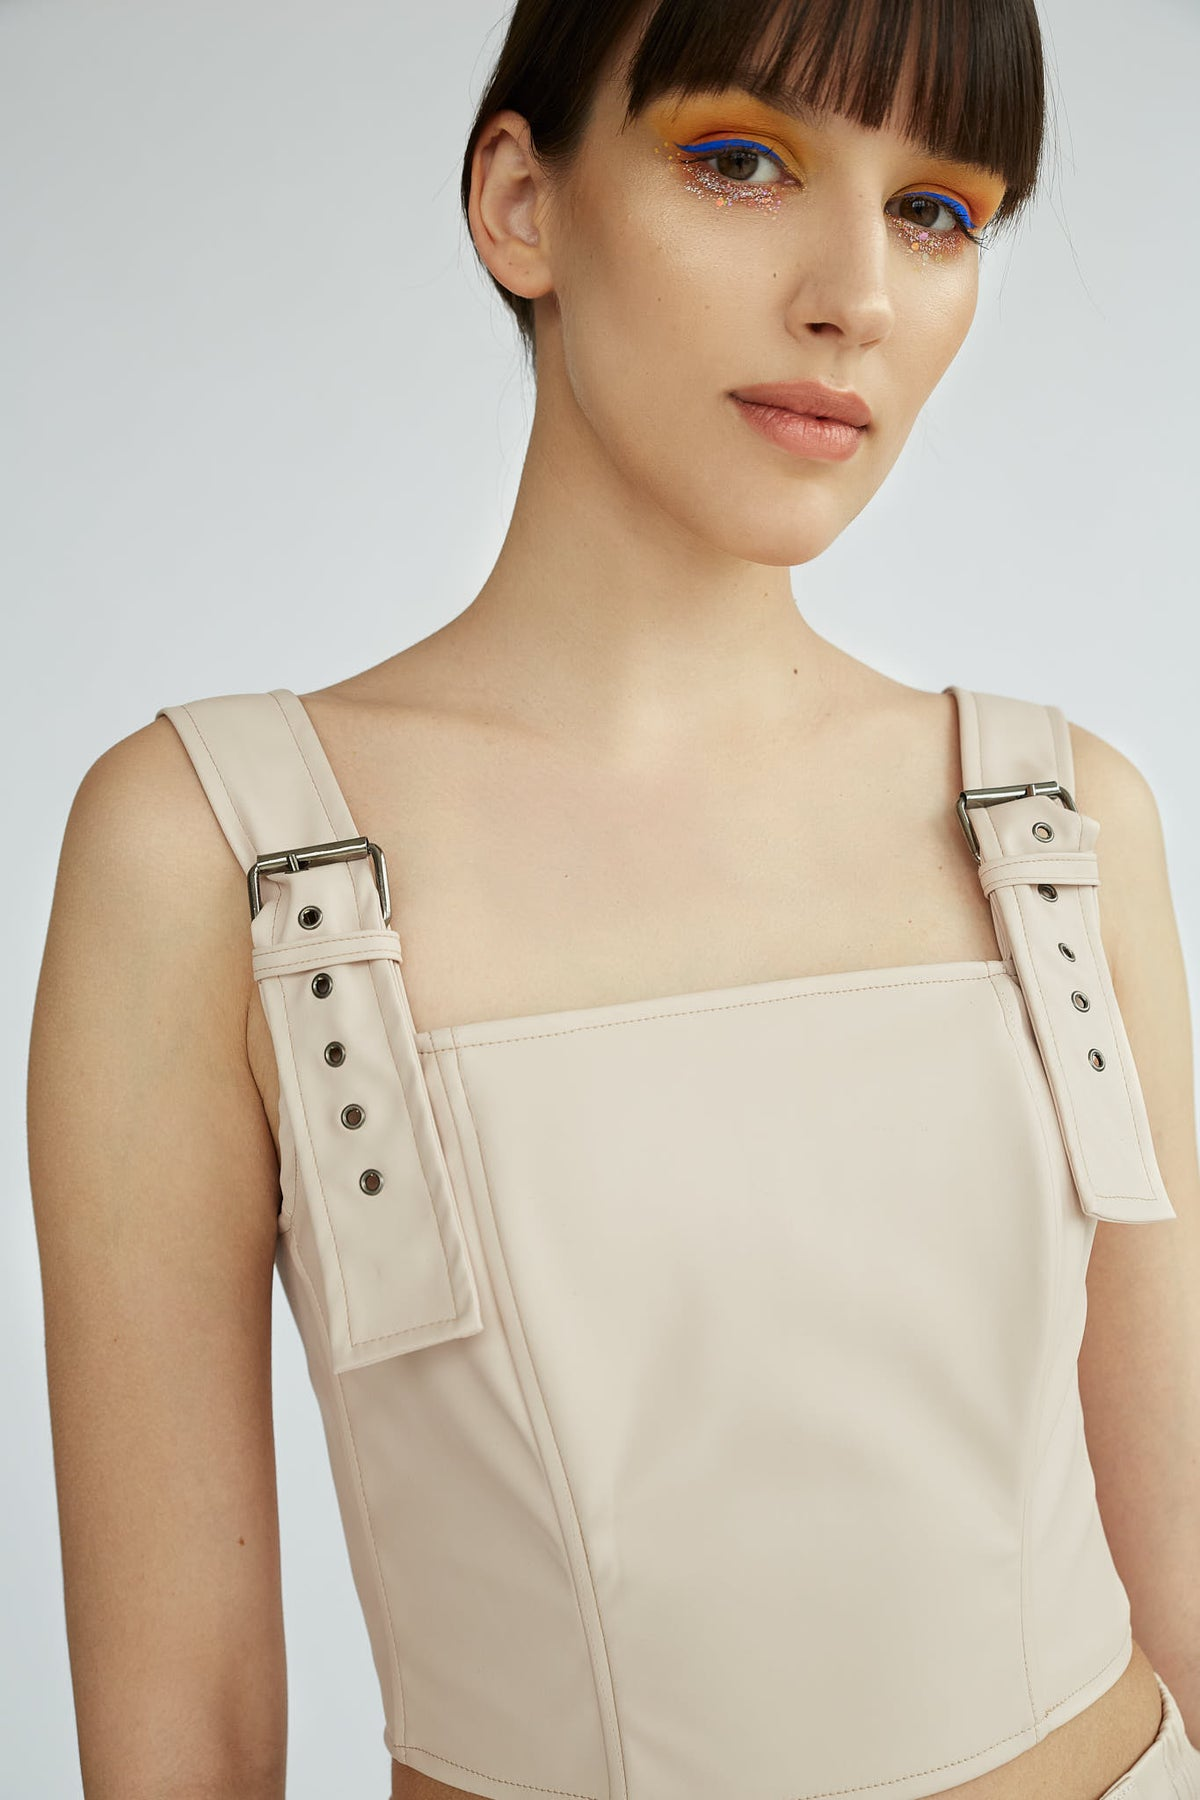 SHOREDITCH-Soft-eco-leather-crop-top-details-le-slap-clothing.jpg